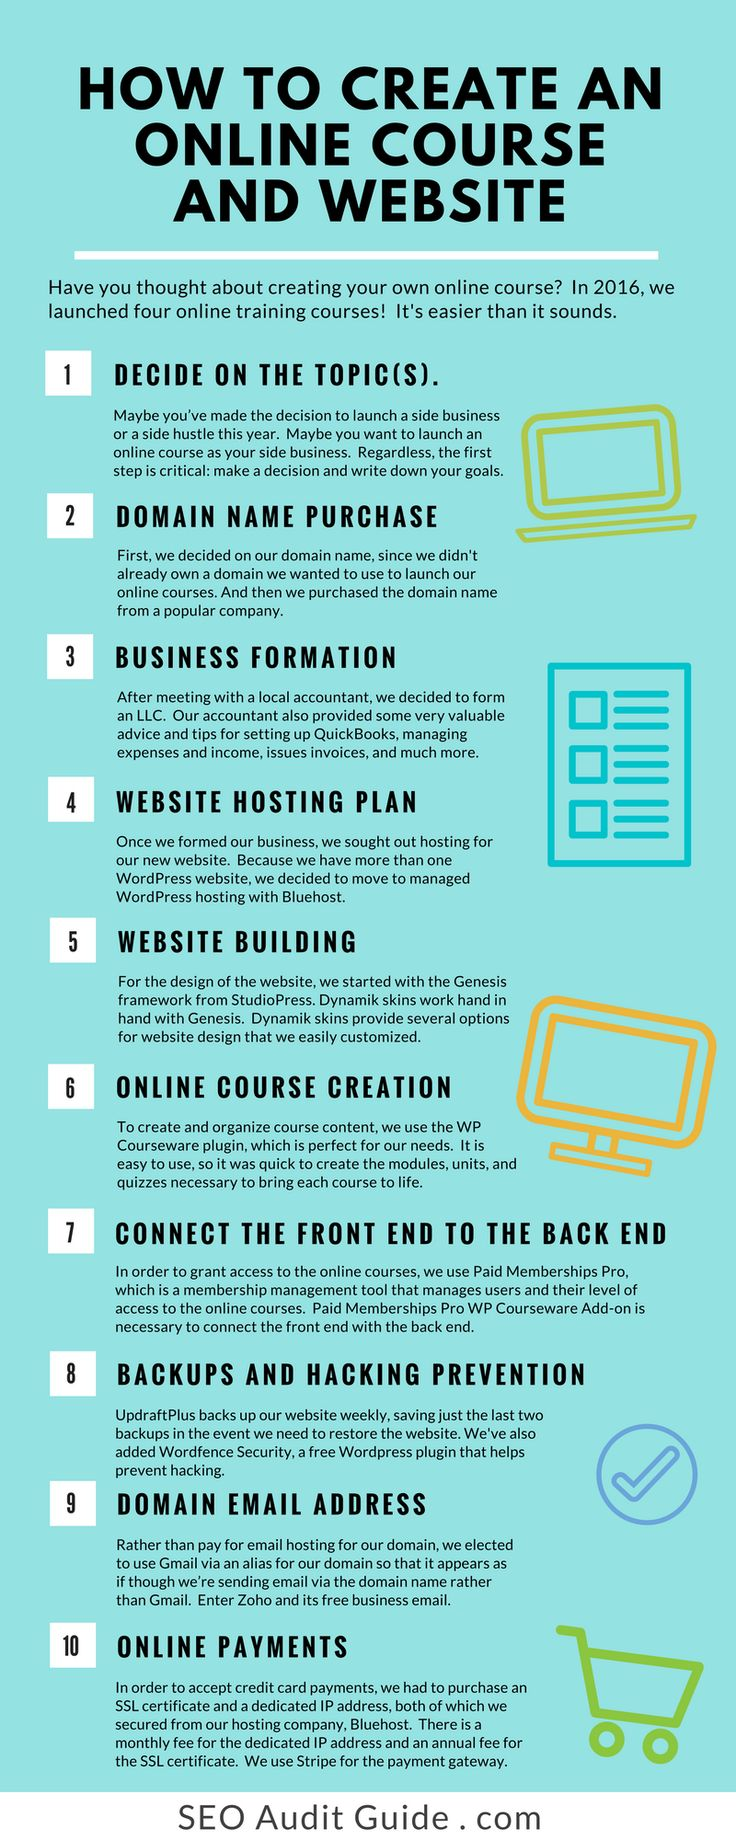 How to Create an Online Course Using WordPress We, A